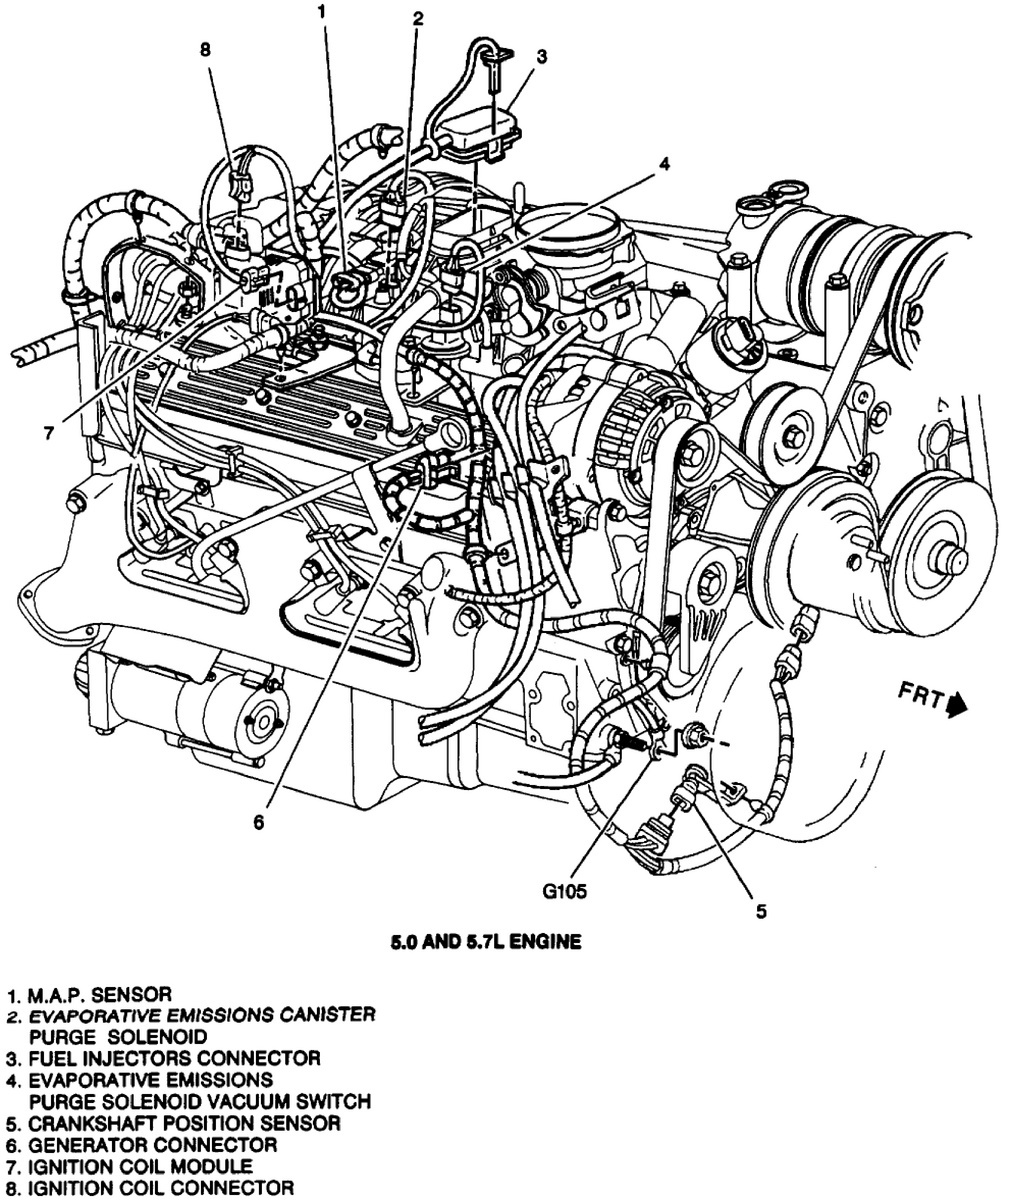 03 silverado engine diagram wiring diagram \u2022 97 chevy firing order suburban engine diagram wiring diagram u2022 rh championapp co 2000 chevy silverado heater core 2001 silverado coolant sensor